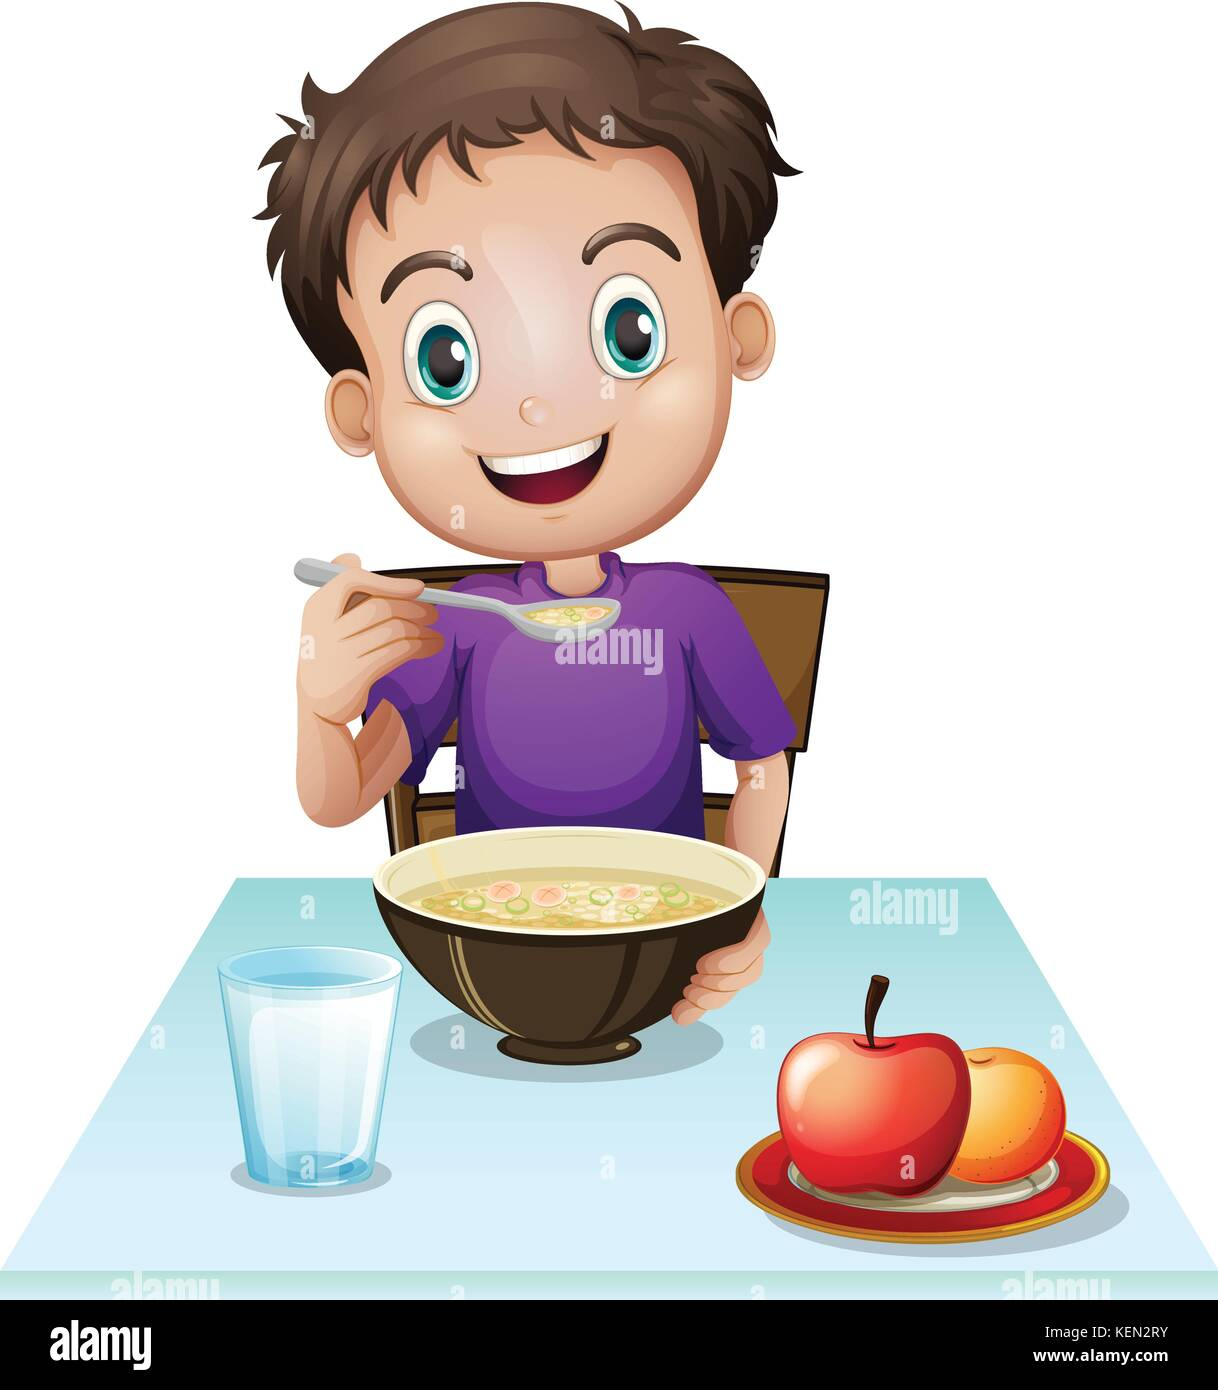 illustration of a boy eating his breakfast at the table on a white